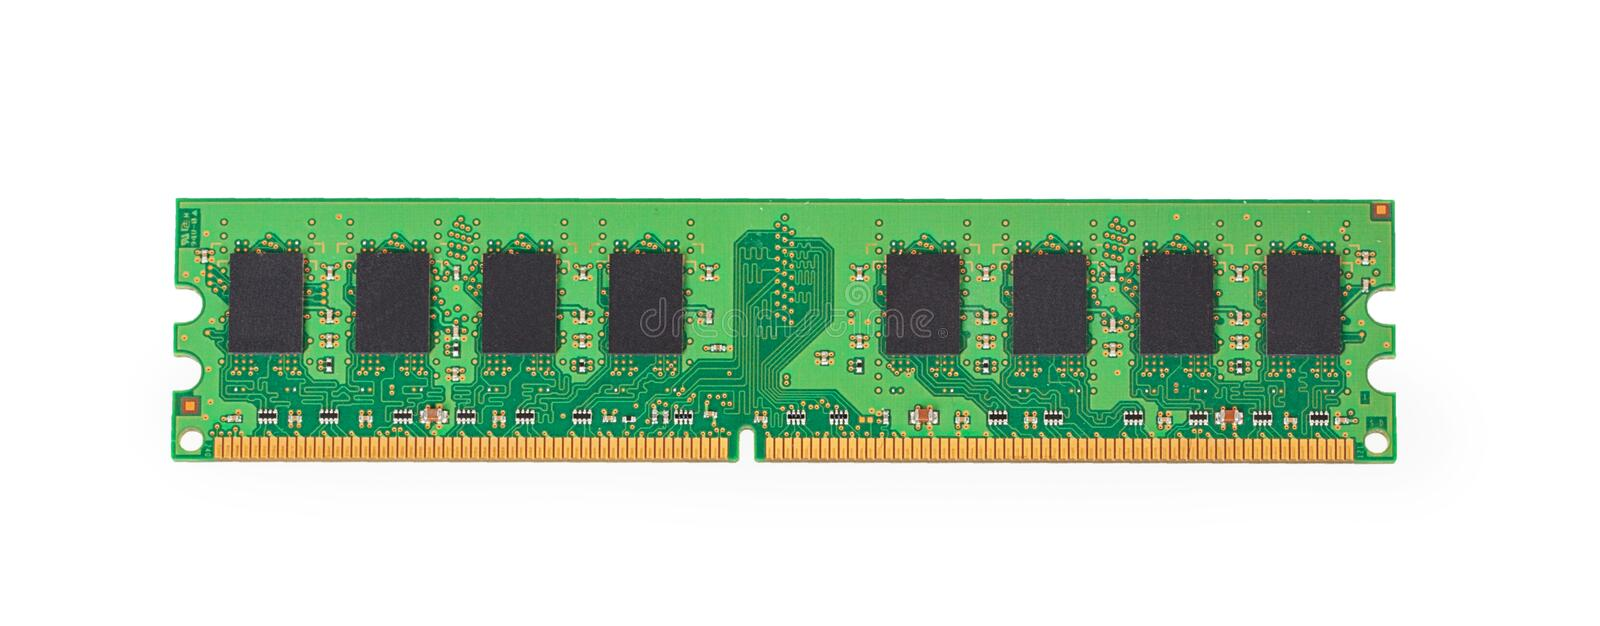 DDR2 memory module. Isolated on white background royalty free stock photography